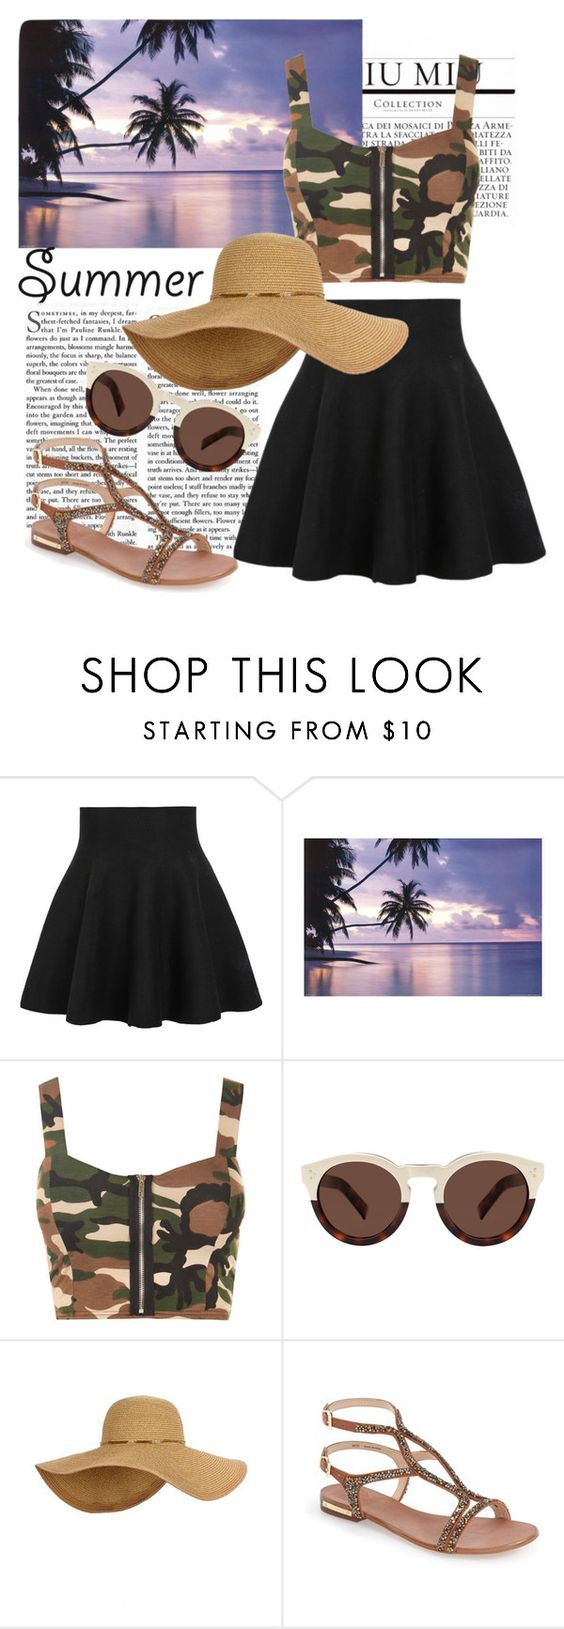 """""""Camouflage in summer"""" by almightyxx ❤ liked on Polyvore featuring WithChic, WearAll, Illesteva and Vince Camuto"""